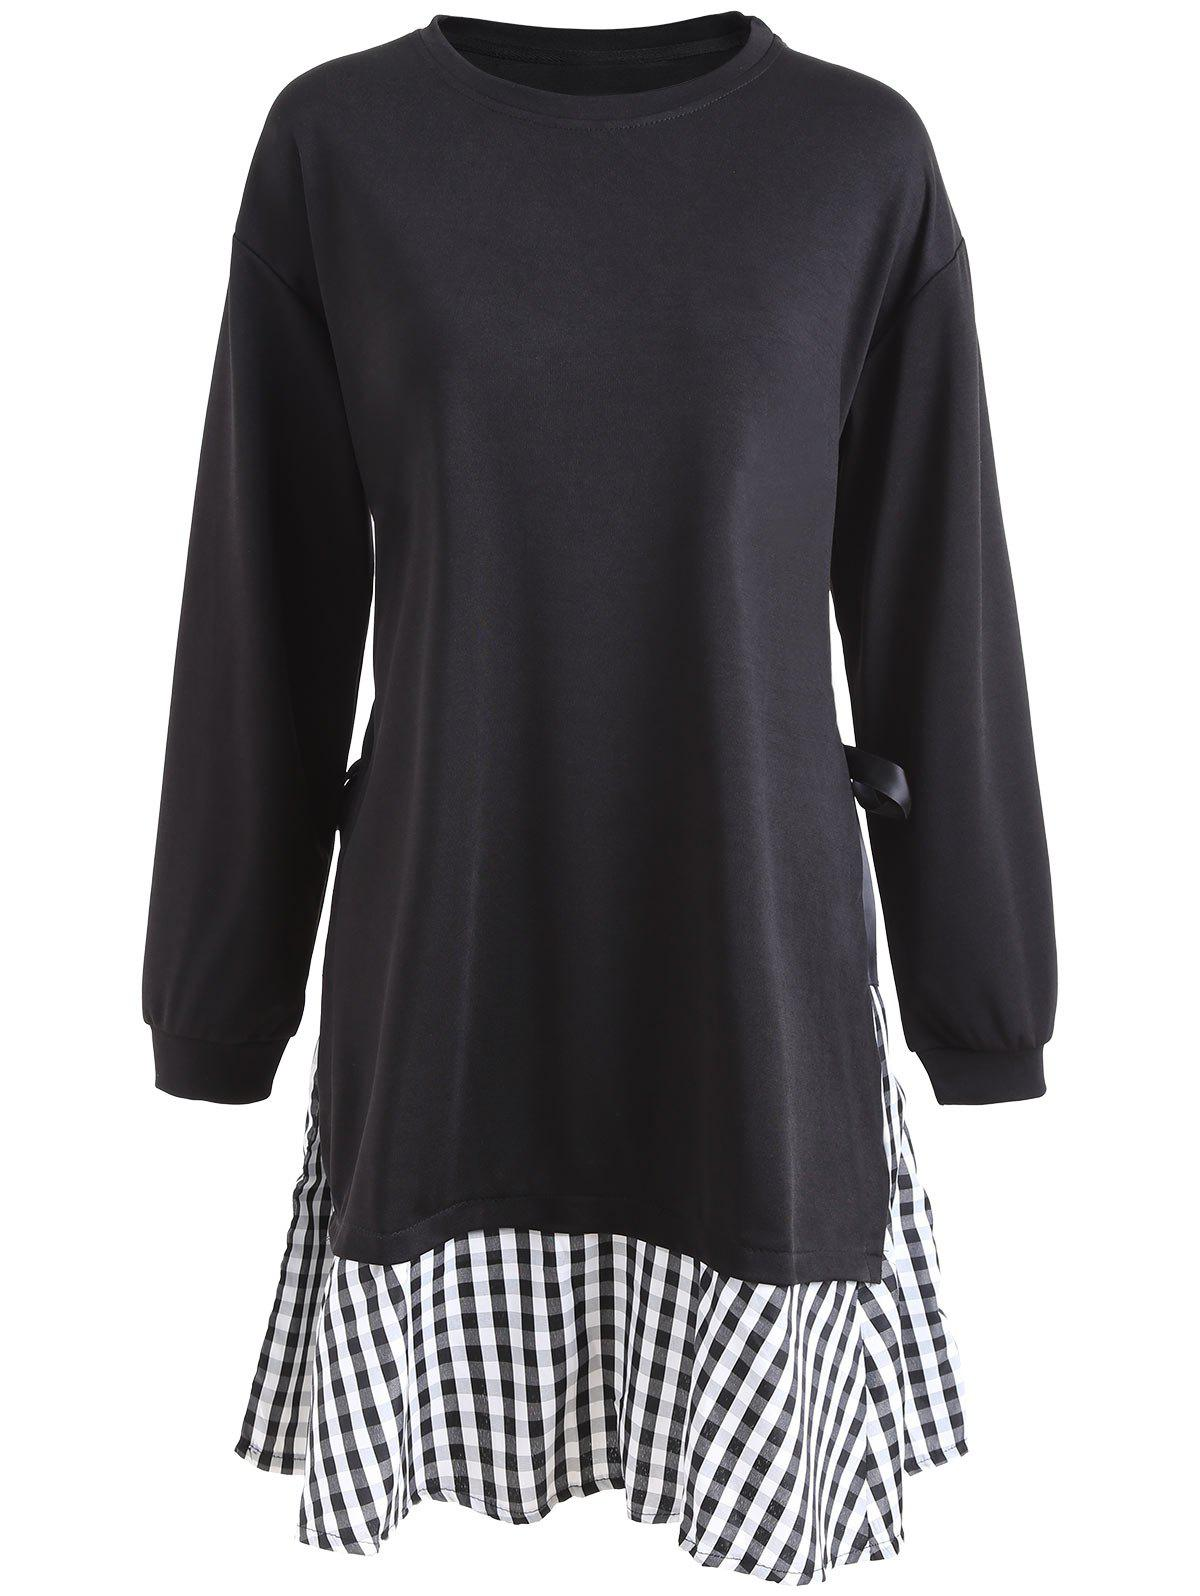 Plaid Panel Plus Size Tunic Dress with SleevesWOMEN<br><br>Size: 4XL; Color: BLACK; Style: Casual; Material: Cotton Blend,Polyester; Silhouette: A-Line; Dresses Length: Mini; Neckline: Round Collar; Sleeve Length: Long Sleeves; Embellishment: Spliced; Pattern Type: Plaid; With Belt: No; Season: Fall,Winter; Weight: 0.5000kg; Package Contents: 1 x Dress;